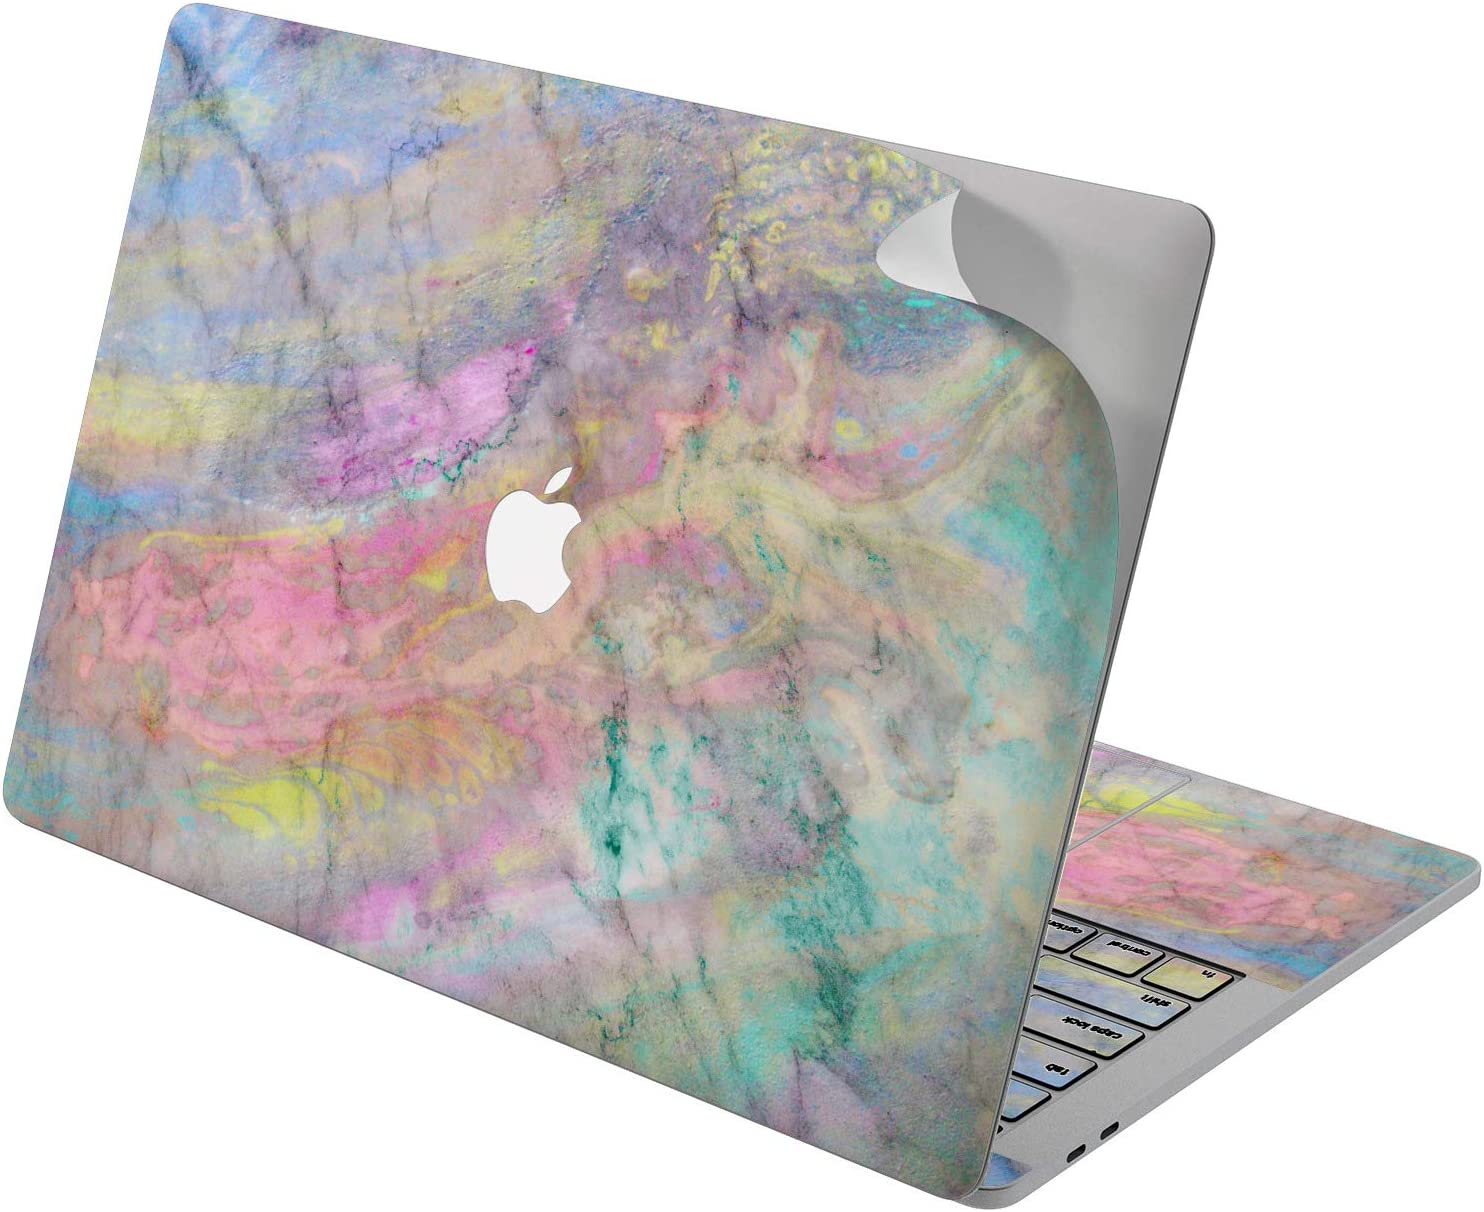 """Cavka Vinyl Decal Skin for Apple MacBook Pro 13"""" 2019 15"""" 2018 Air 13"""" 2020 Retina 2015 Mac 11"""" Mac 12"""" Marble Painted Texture Tender Cover Laptop Sticker Pink Pretty Print Protective Design Colorful"""